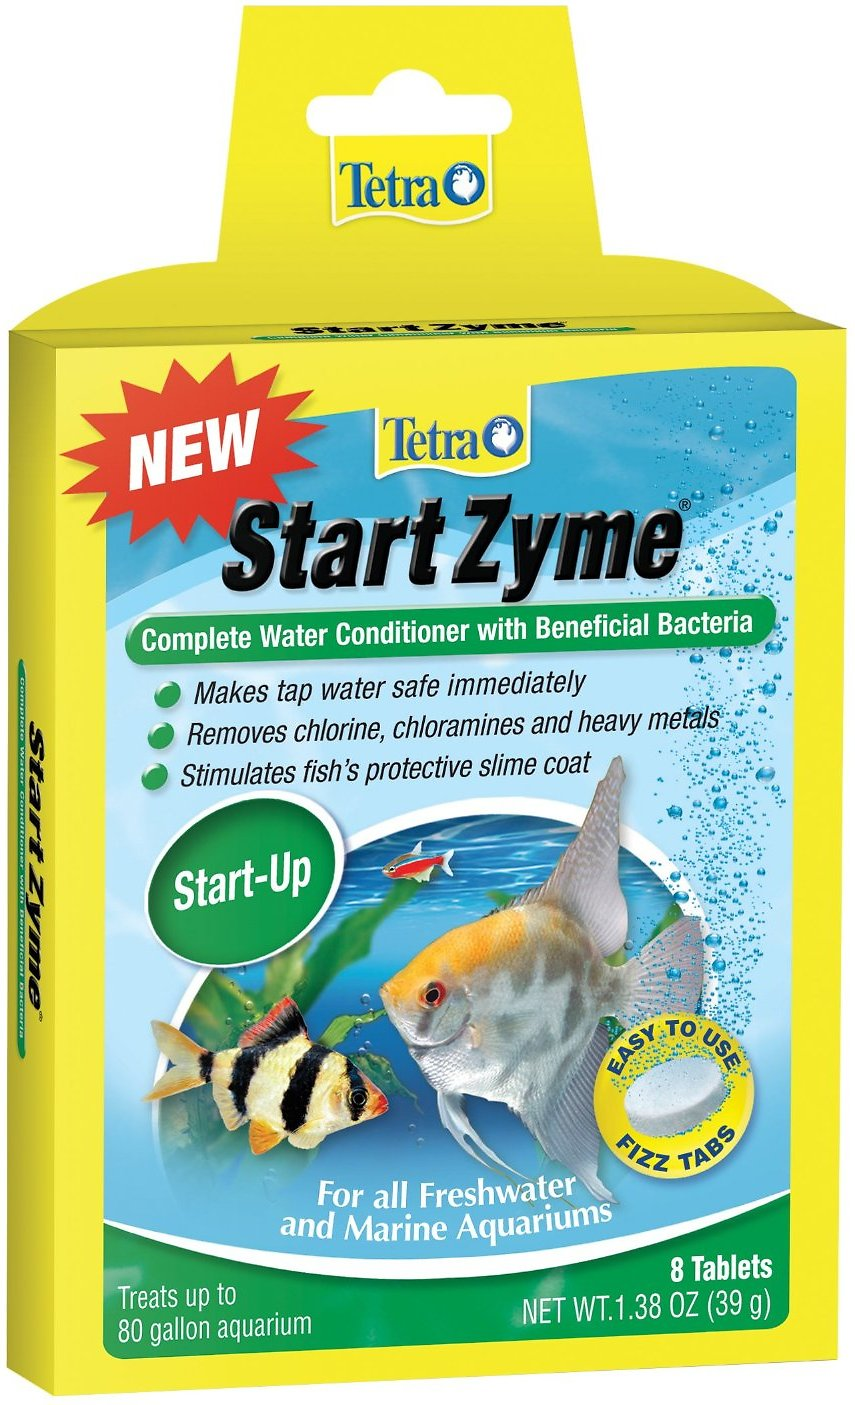 Tetra StartZyme Beneficial Bacteria Complete Water Conditioner, 8-count